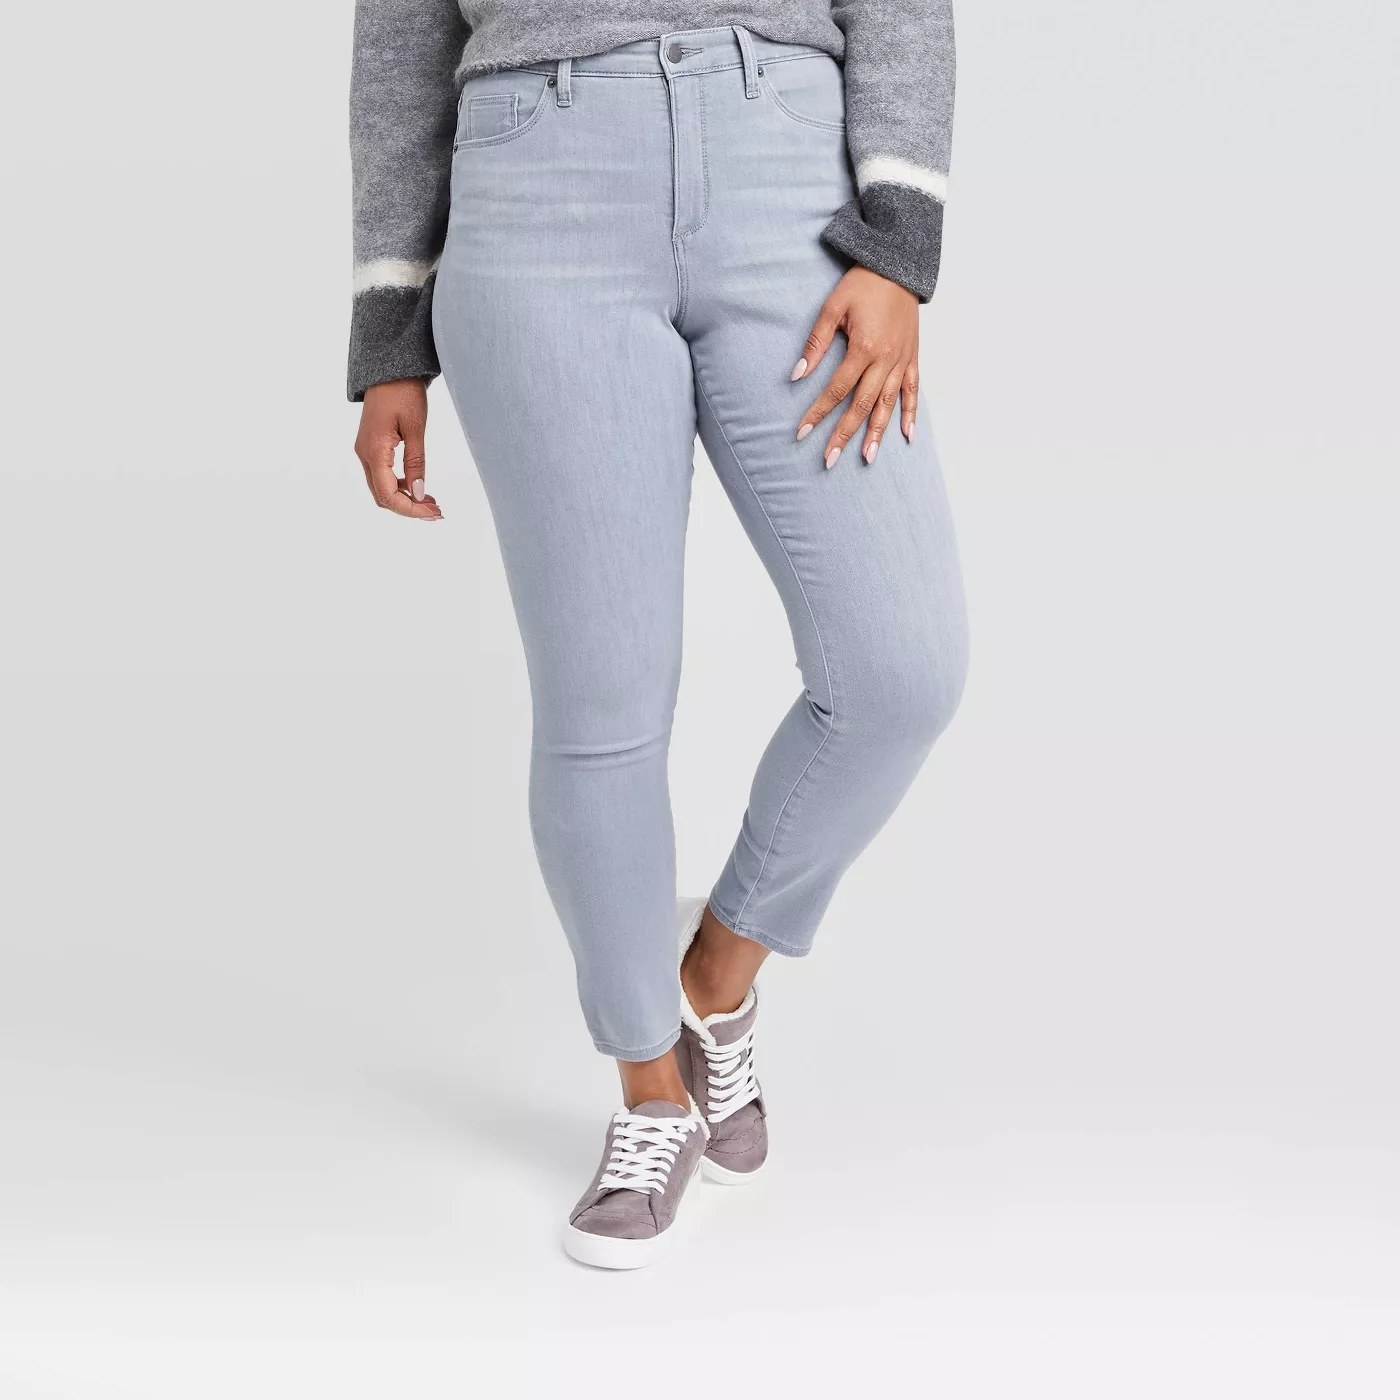 A model wearing the high-rise skinny jeans in gray